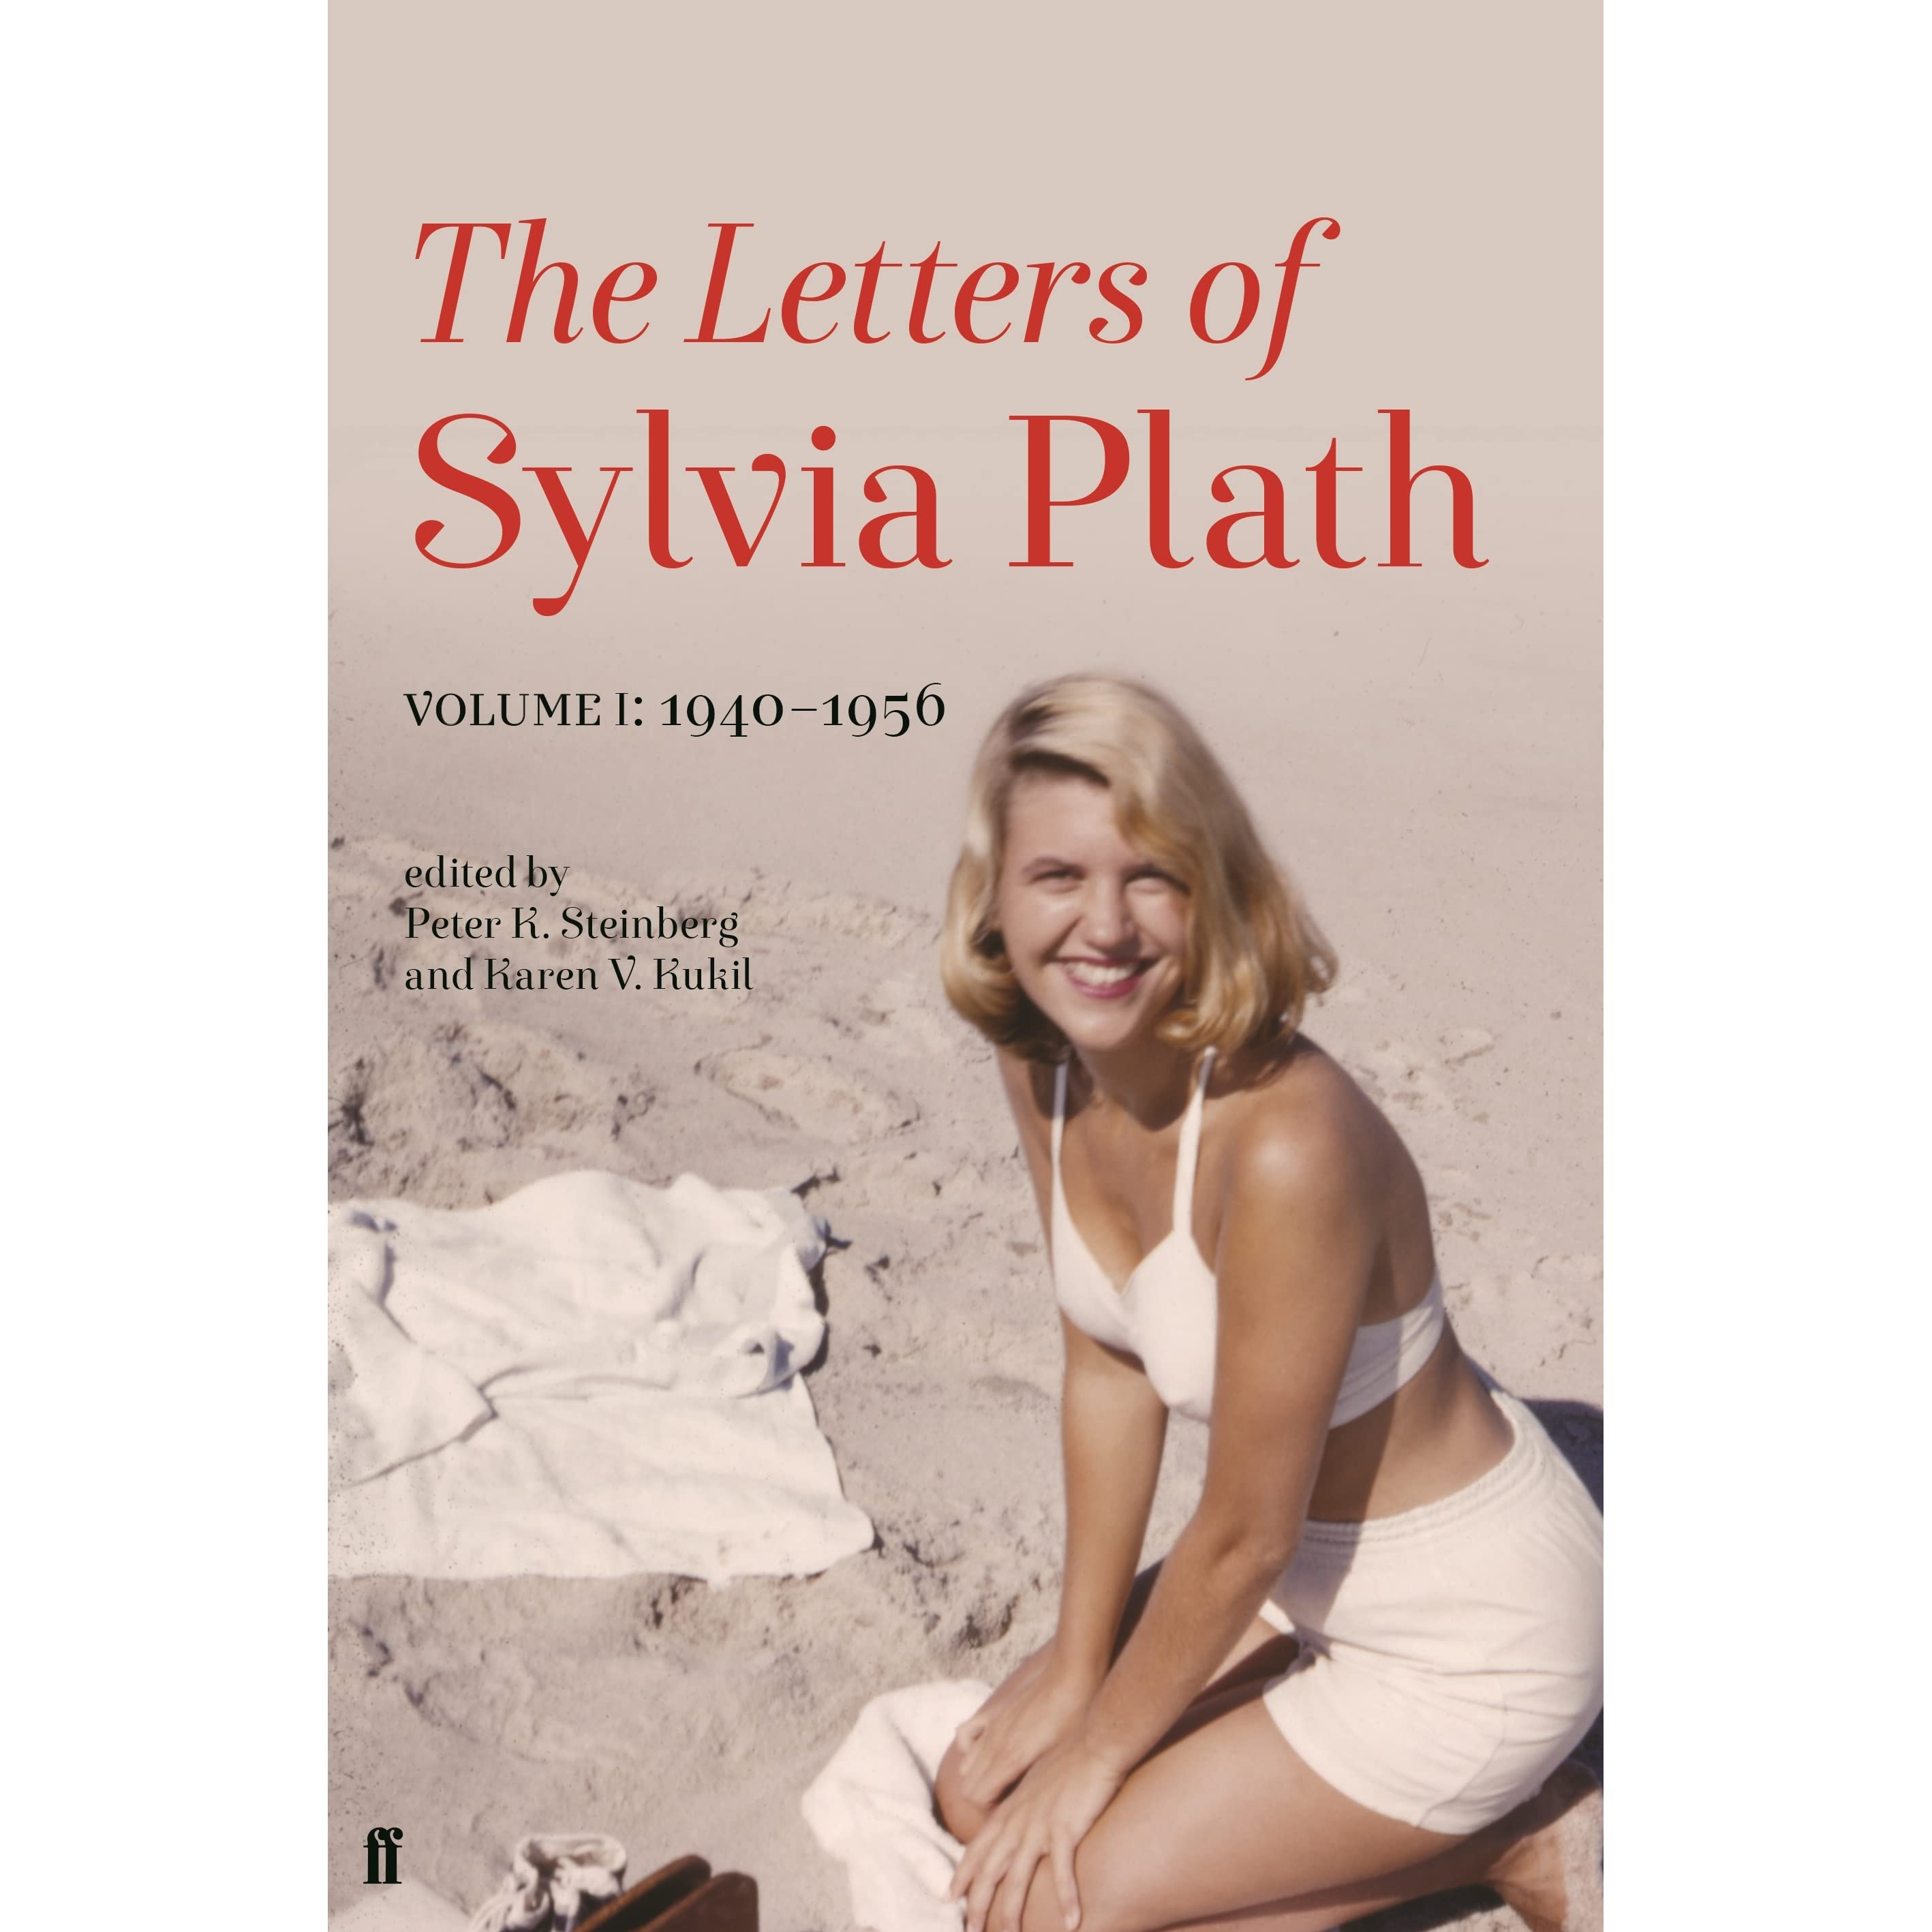 a biography of sylvia plath an american poet 'ted hughes': a controversial biography shows the poet's in his poetry  he is, above all, the cheating husband who drove his american wife, sylvia plath.